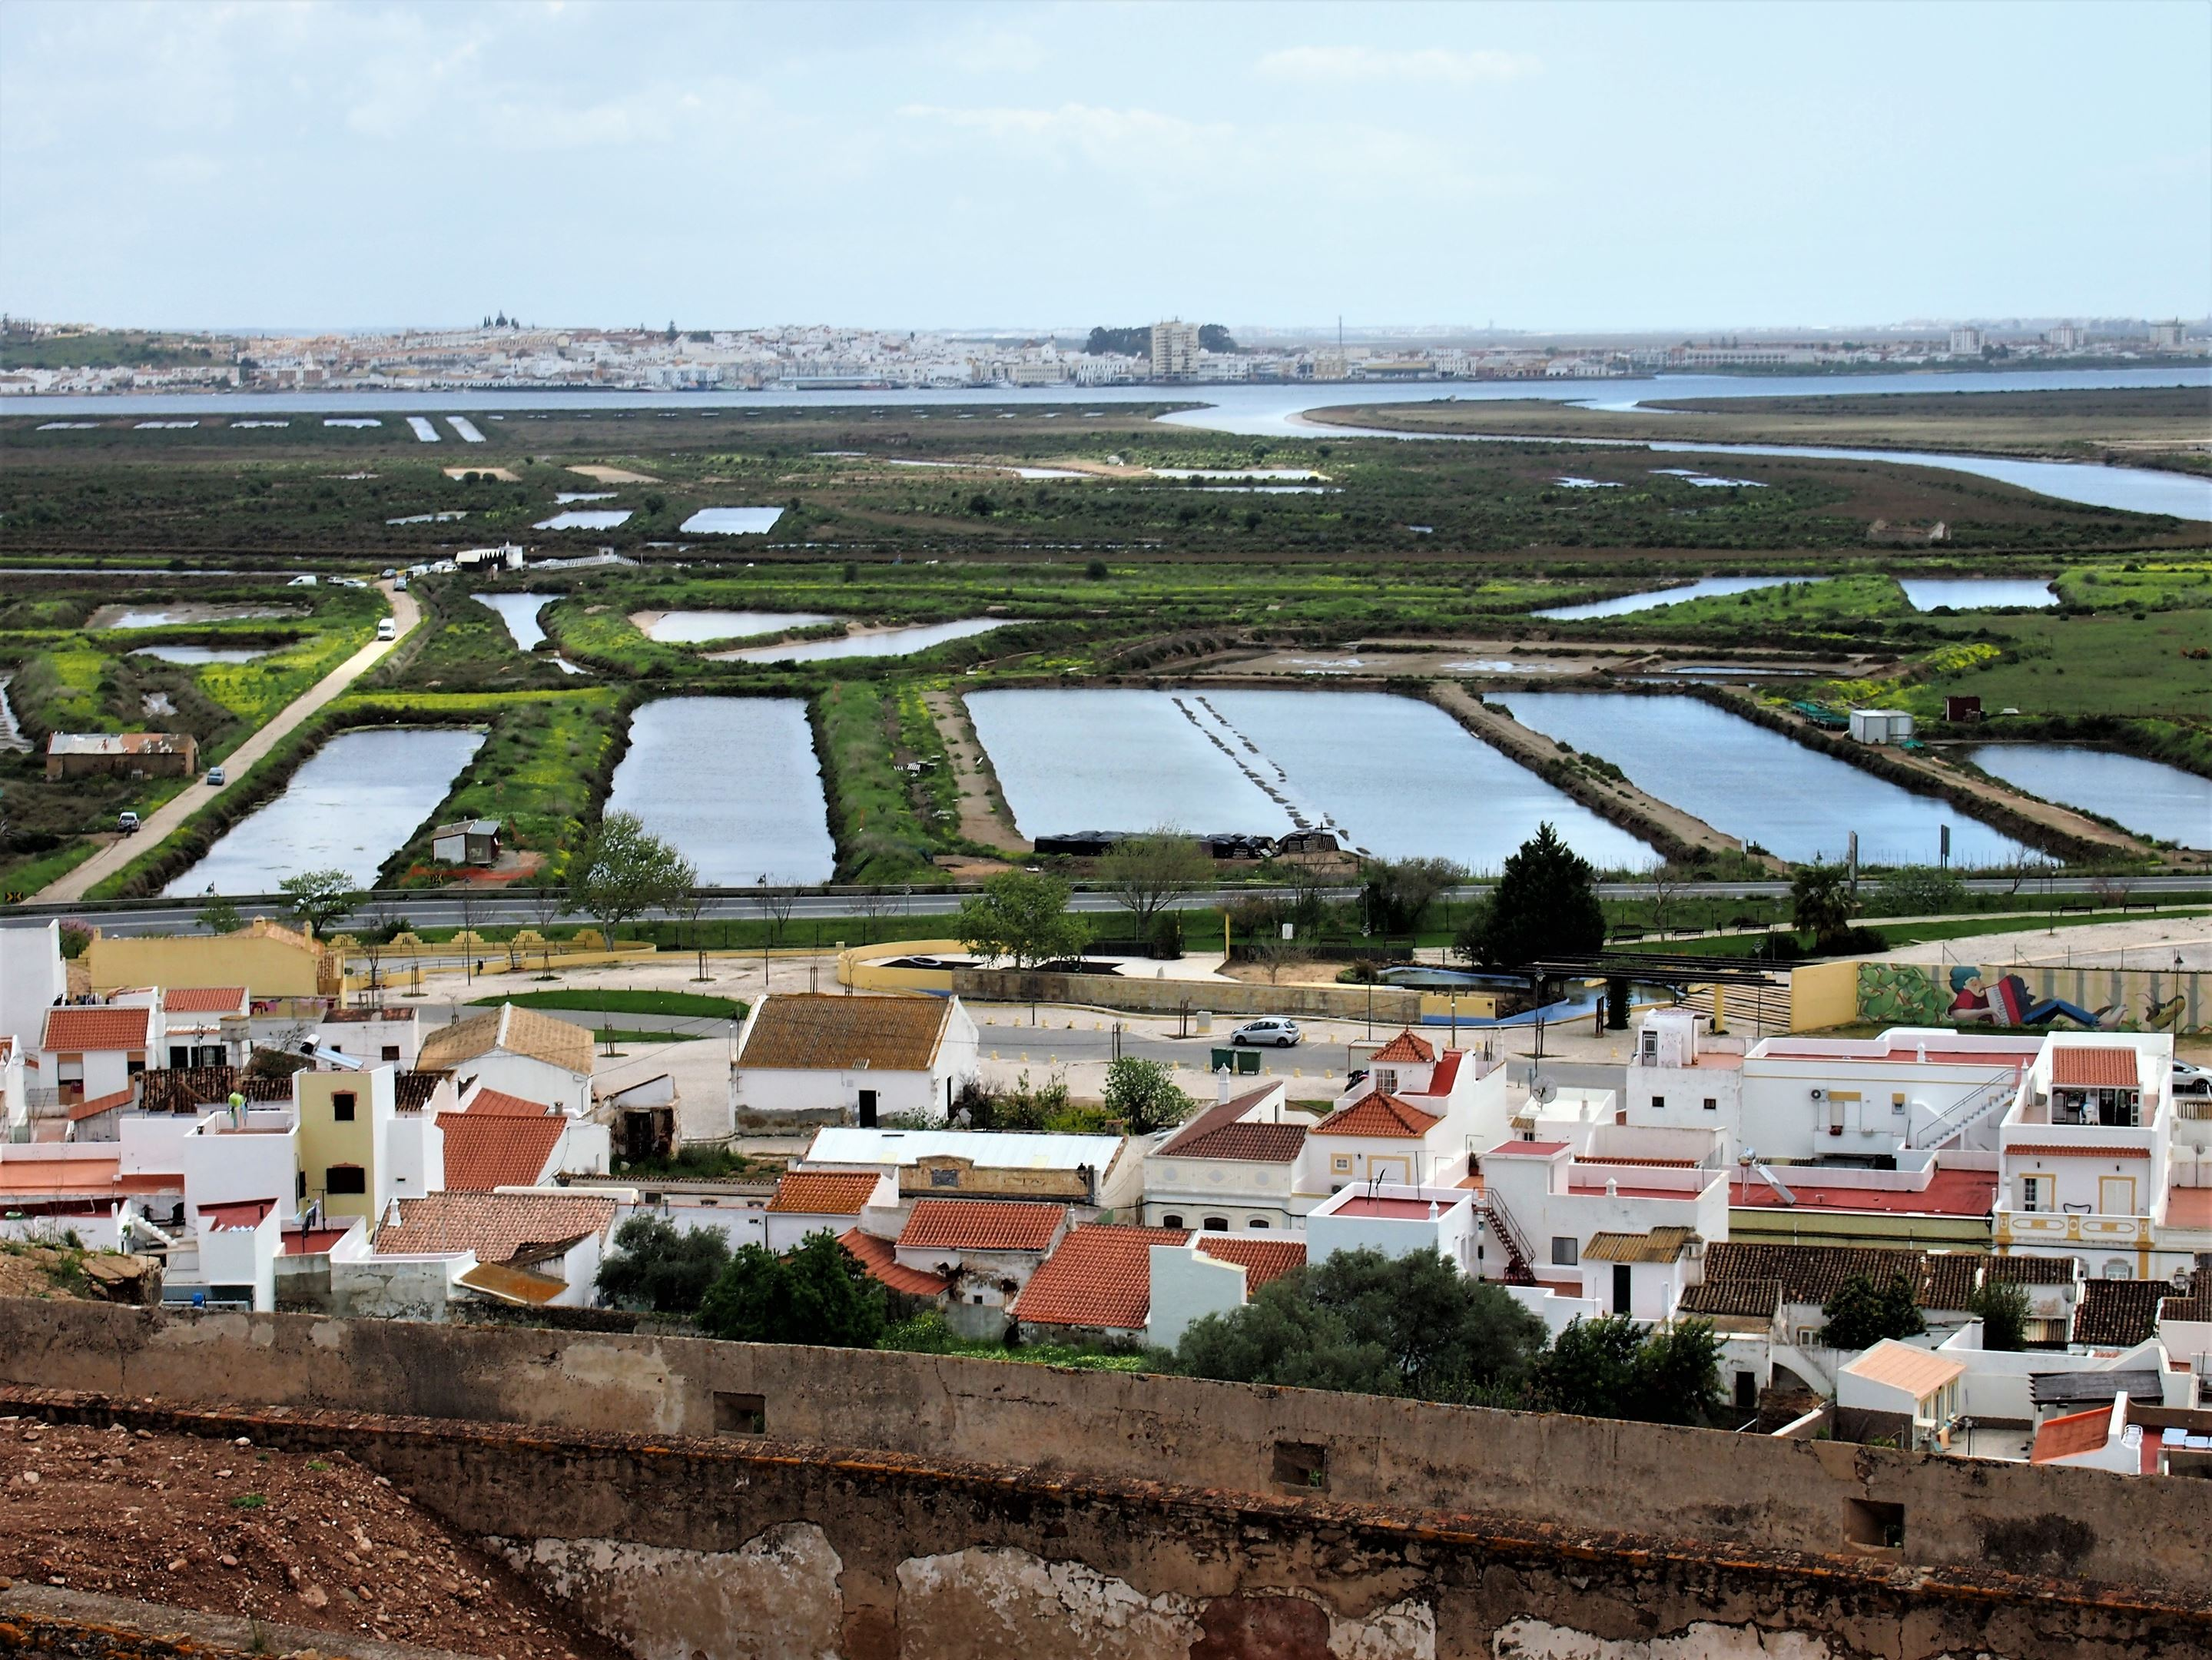 The view from Castro Marim Castle, with Castro Marim in the foreground, the salt farm, the Guadiana River and at the top, Ayamonte in Spain.